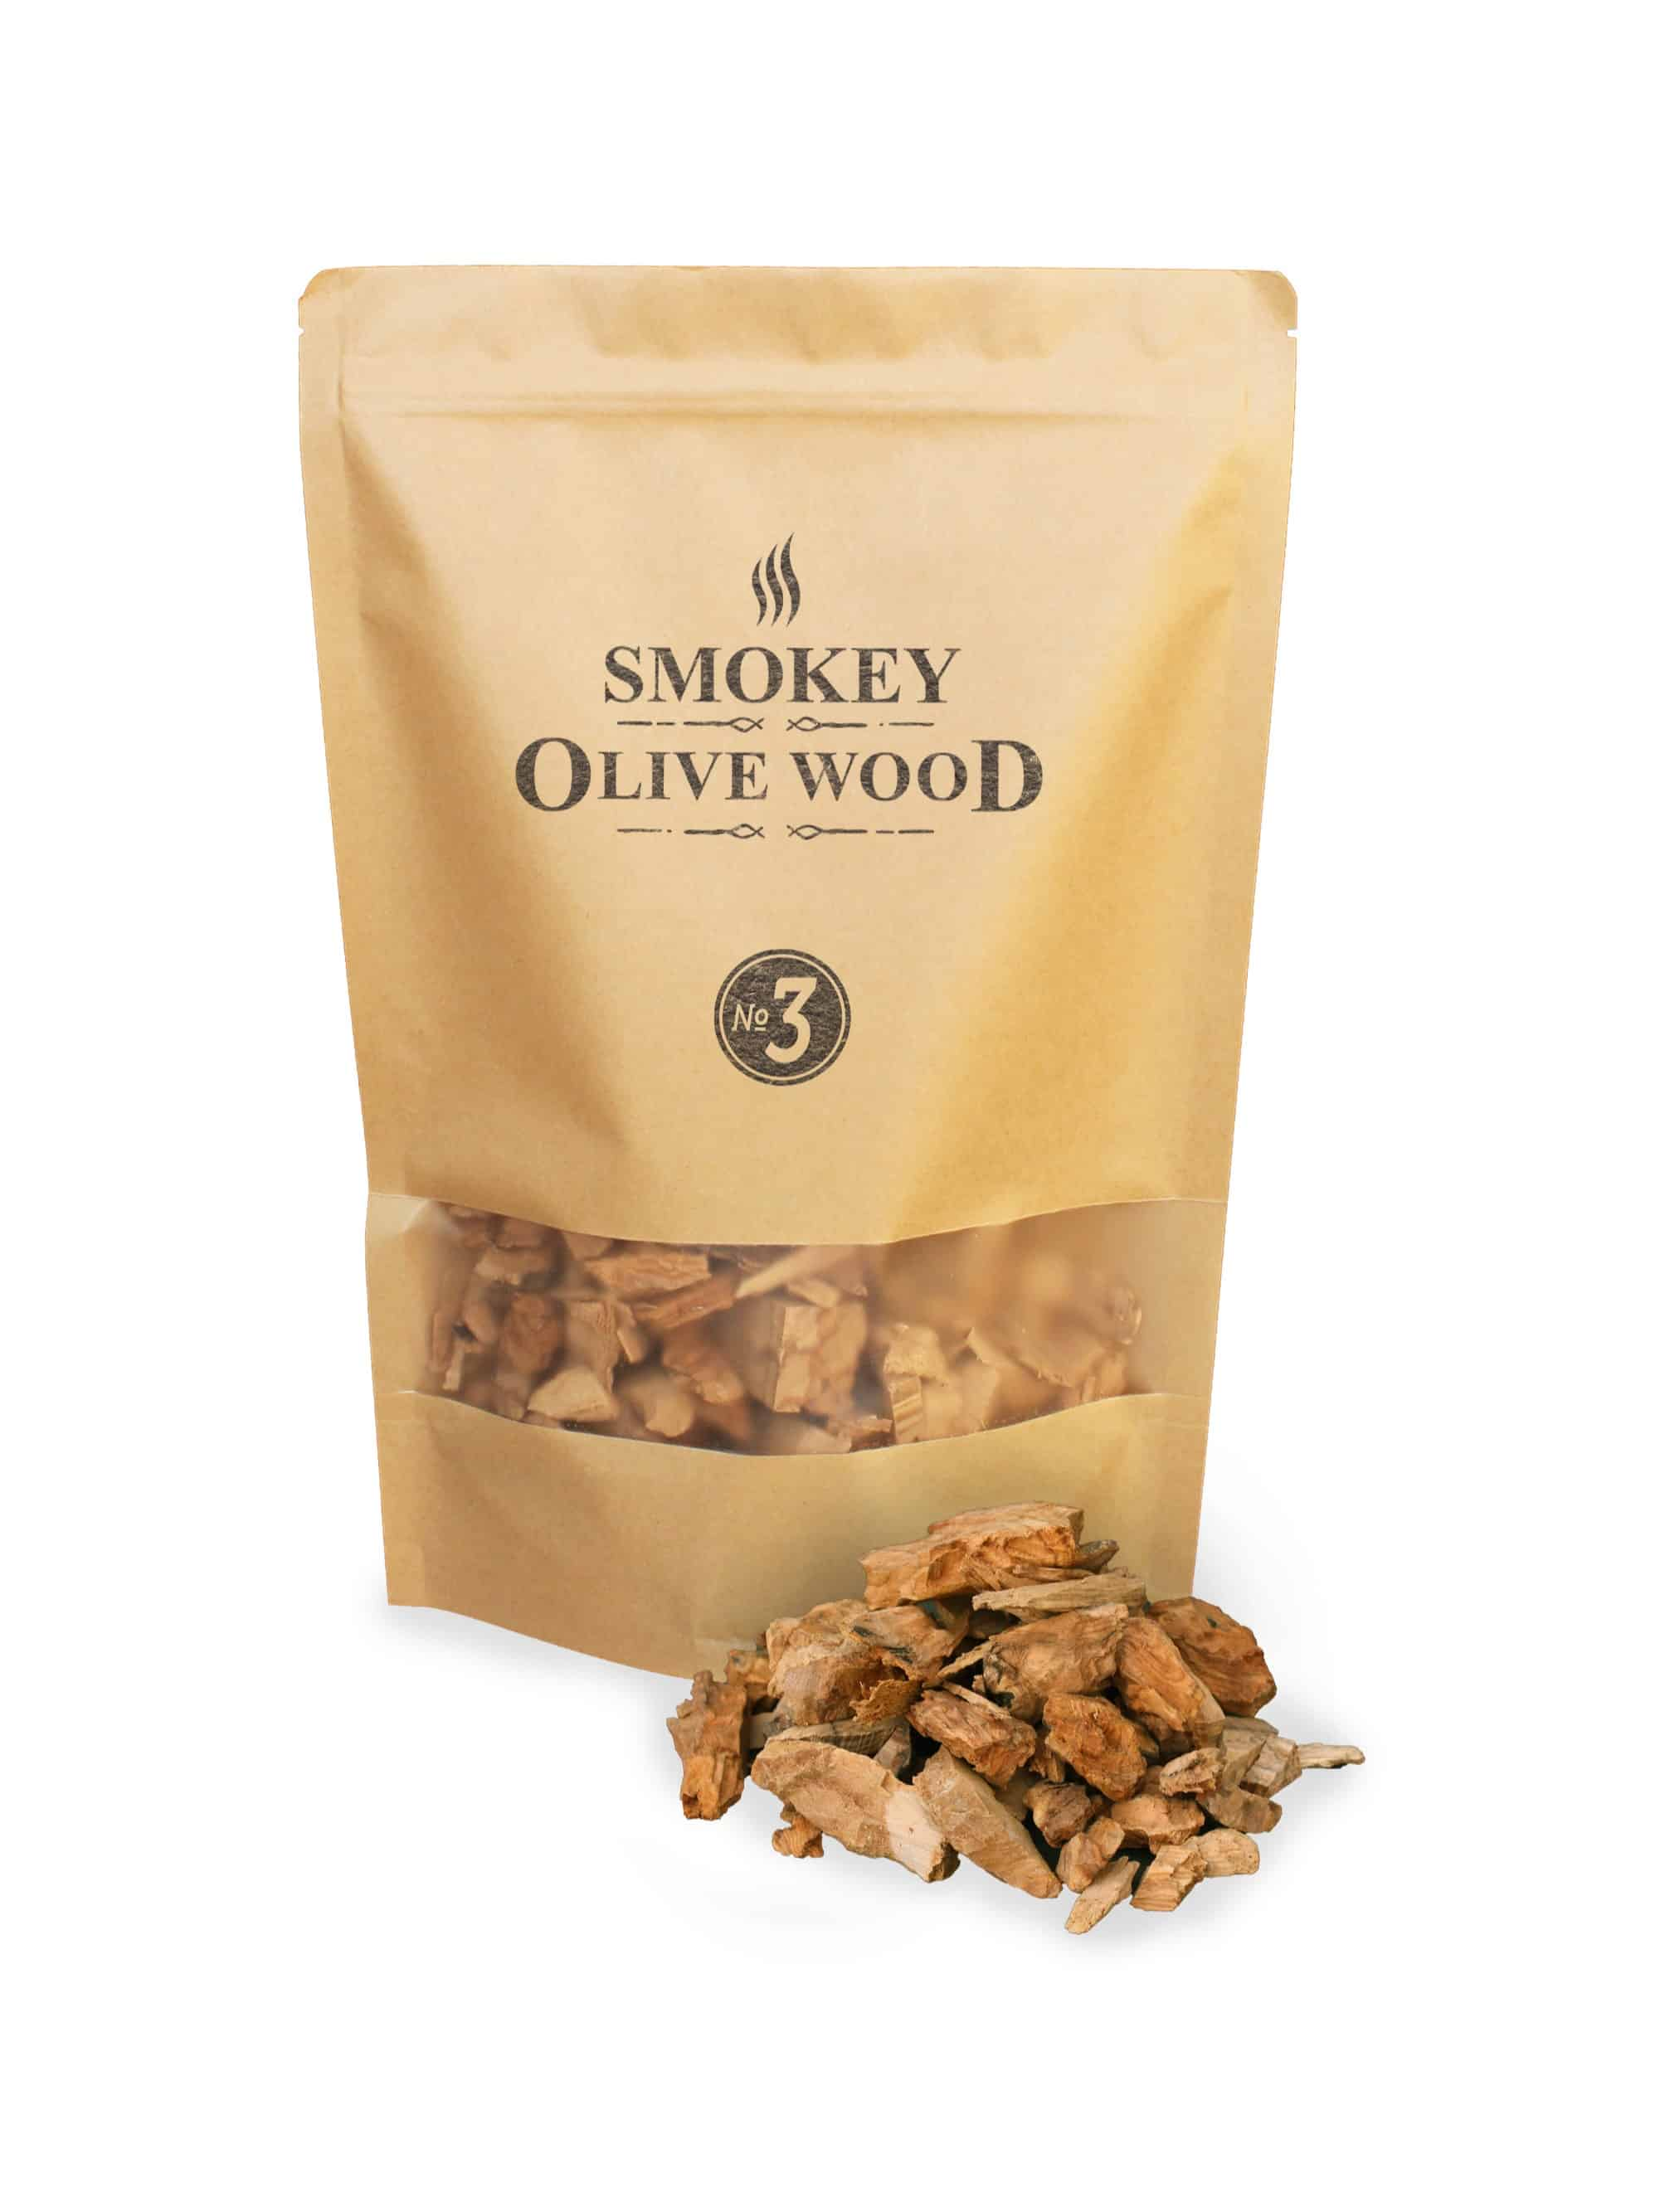 Smokey Olive Wood Chips For Smoking